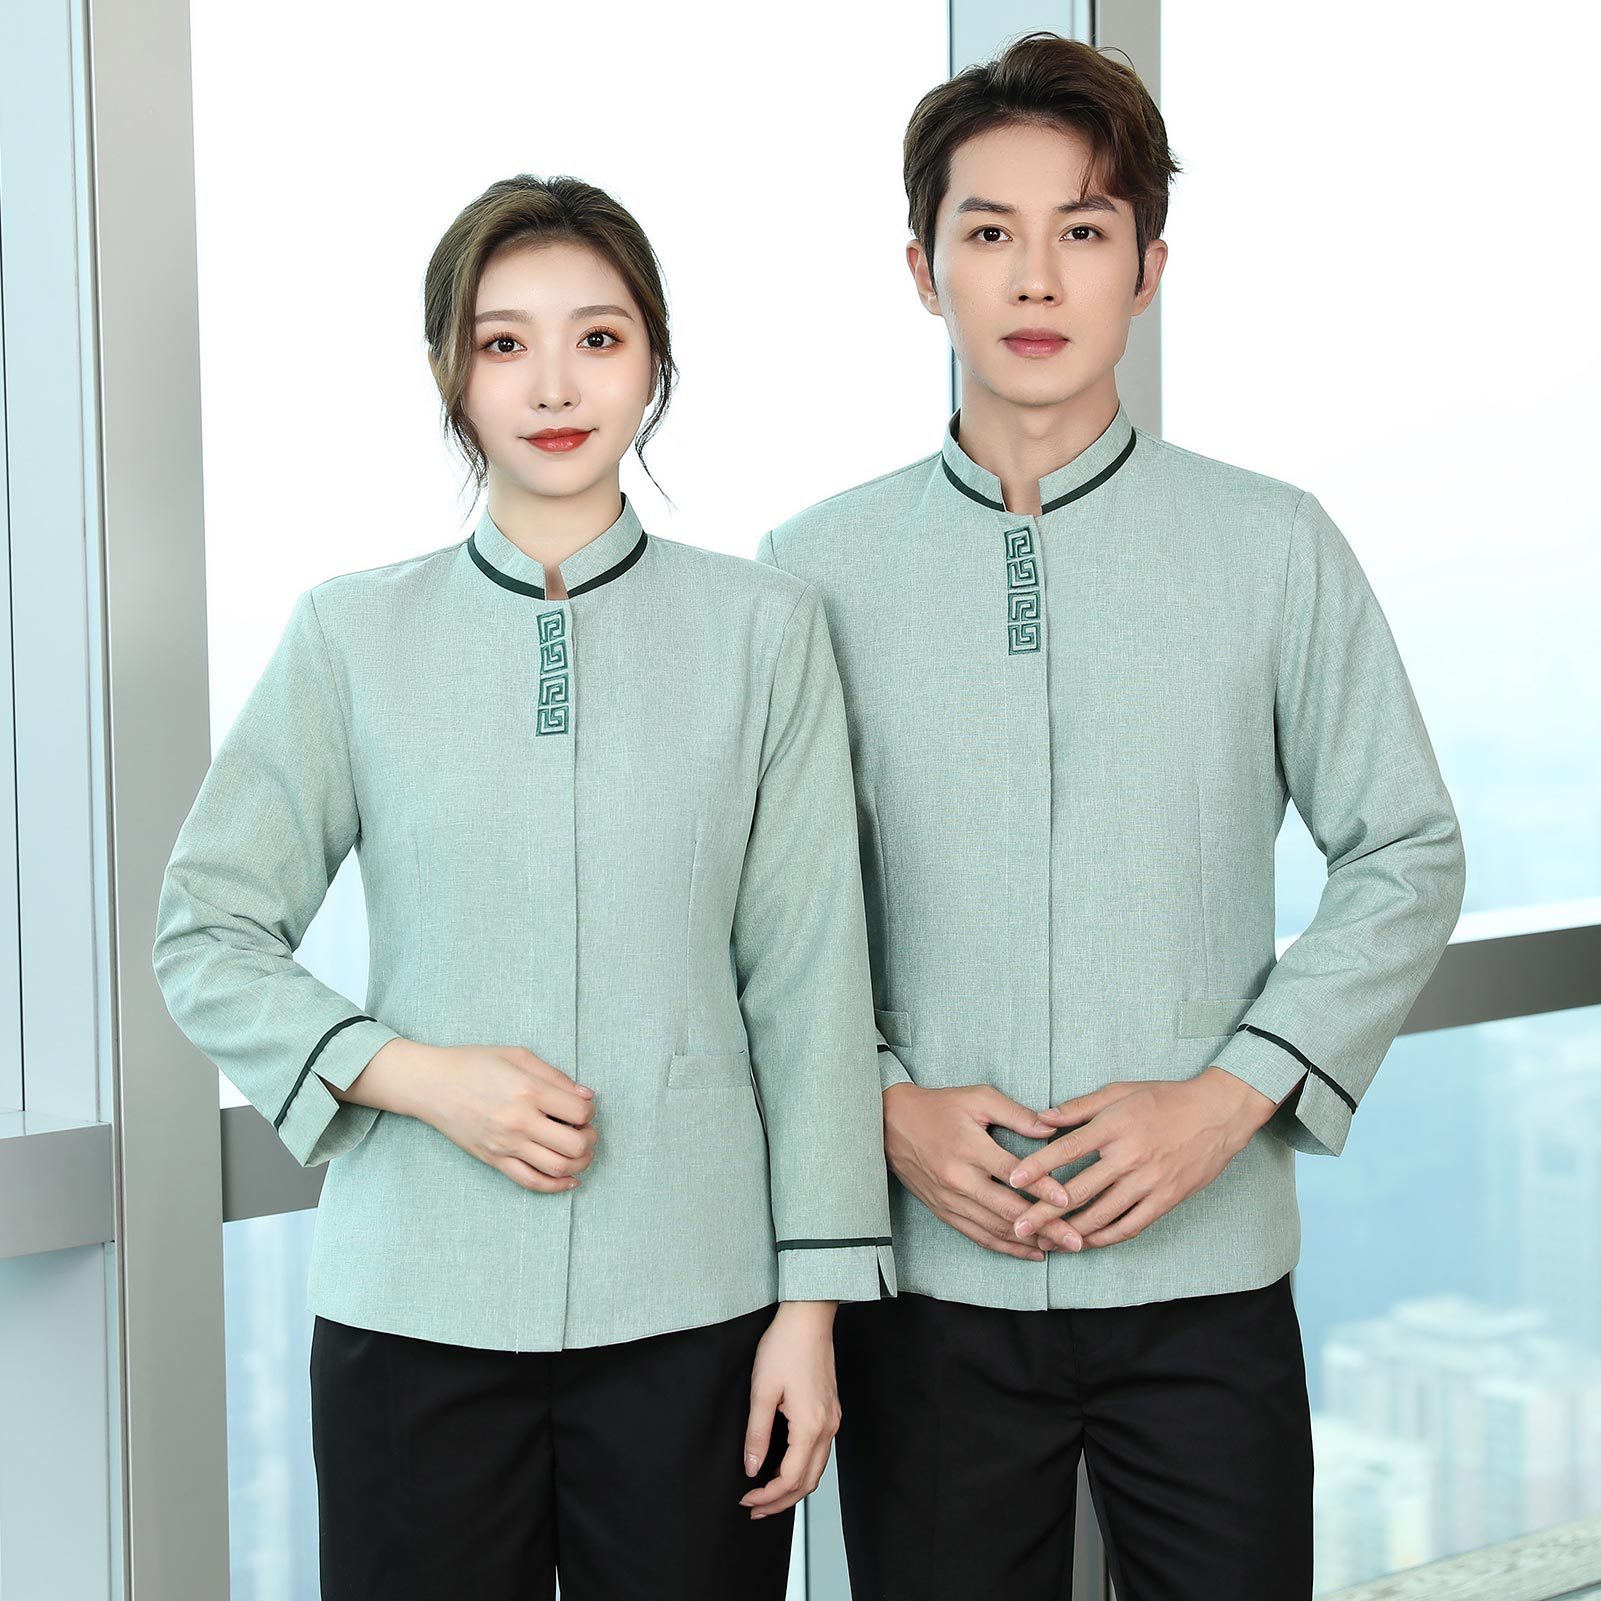 Cleaners autumn and winter long sleeved sanitary work clothes uniforms shopping malls restaurants cleaning aunts clothing health care hospital protective clothes